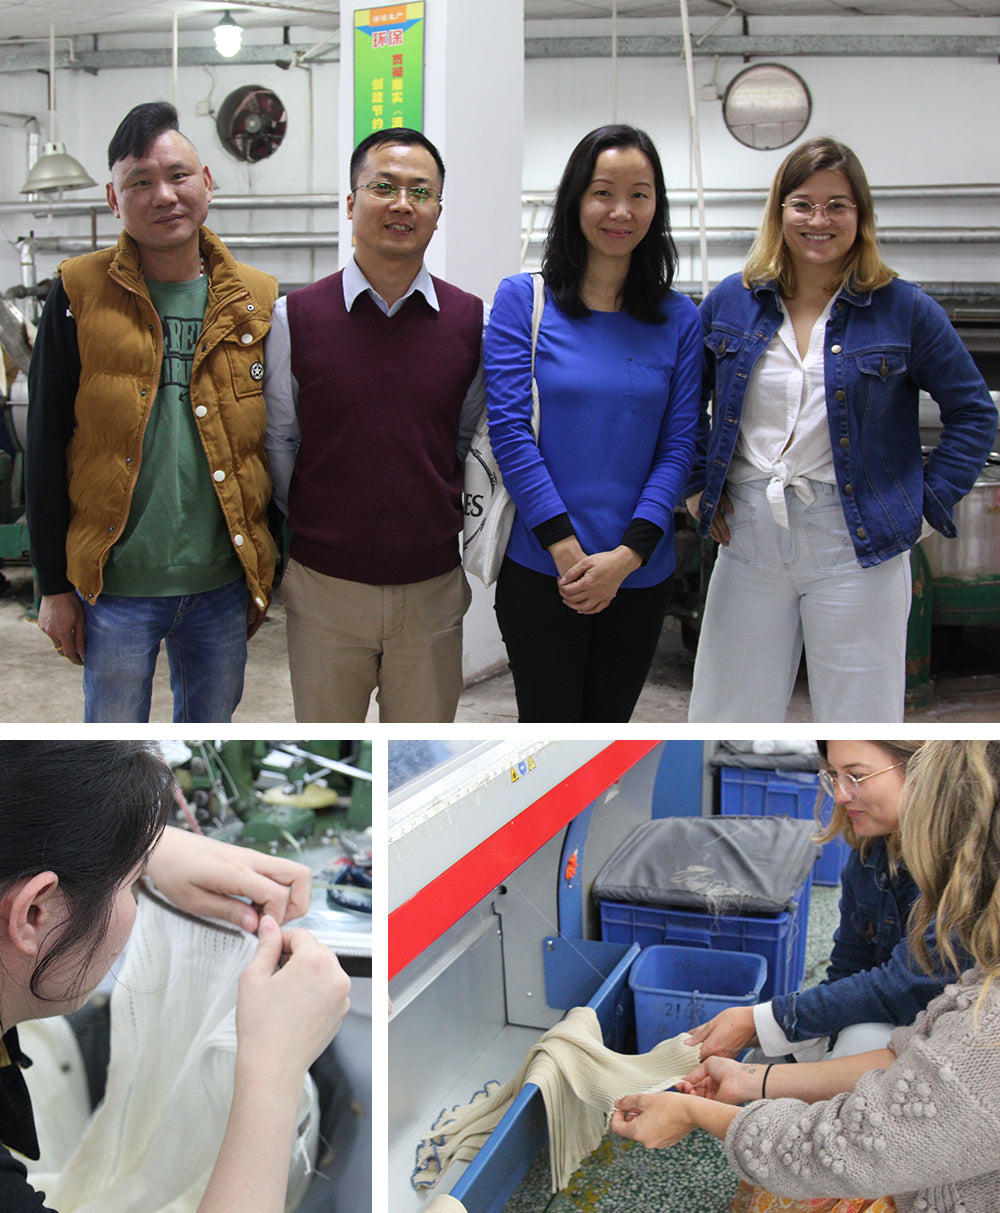 Arnhem Makers from Dongguan, China - Fashion Supply Chain Transparency